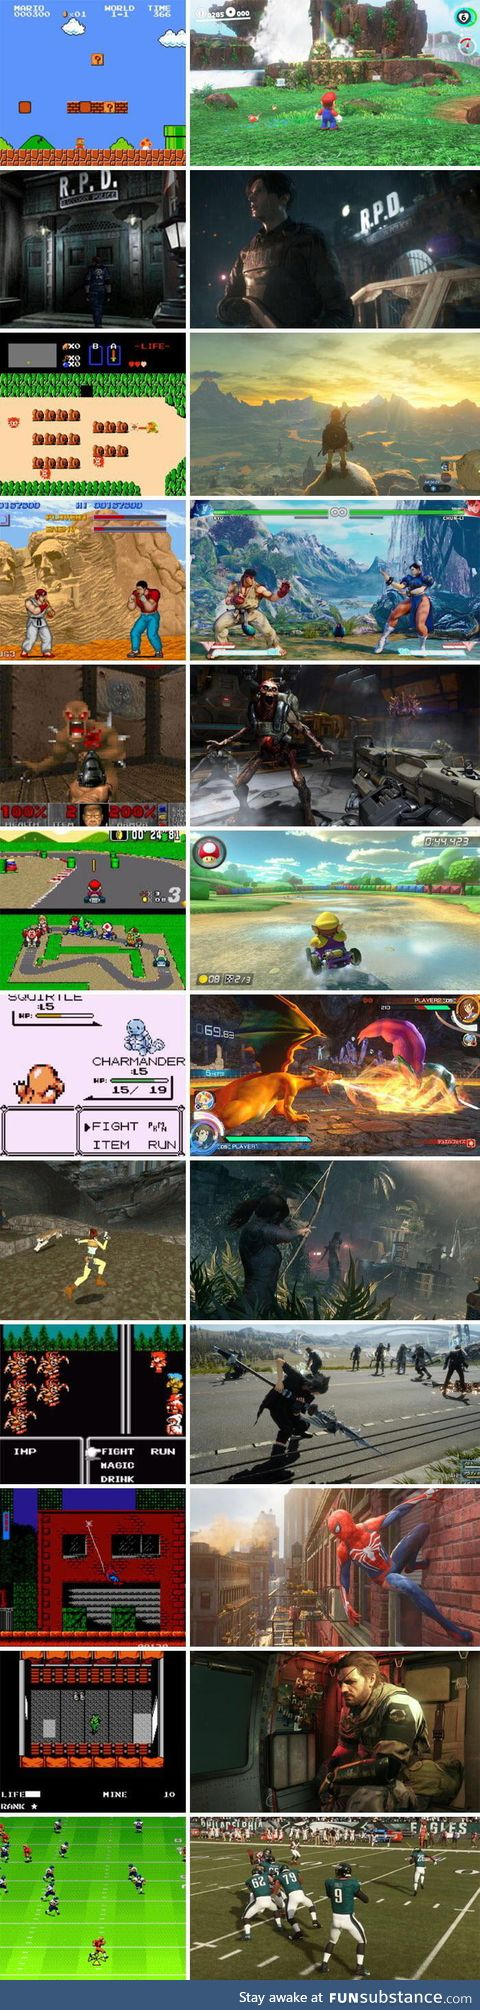 Video game graphics have come a long way